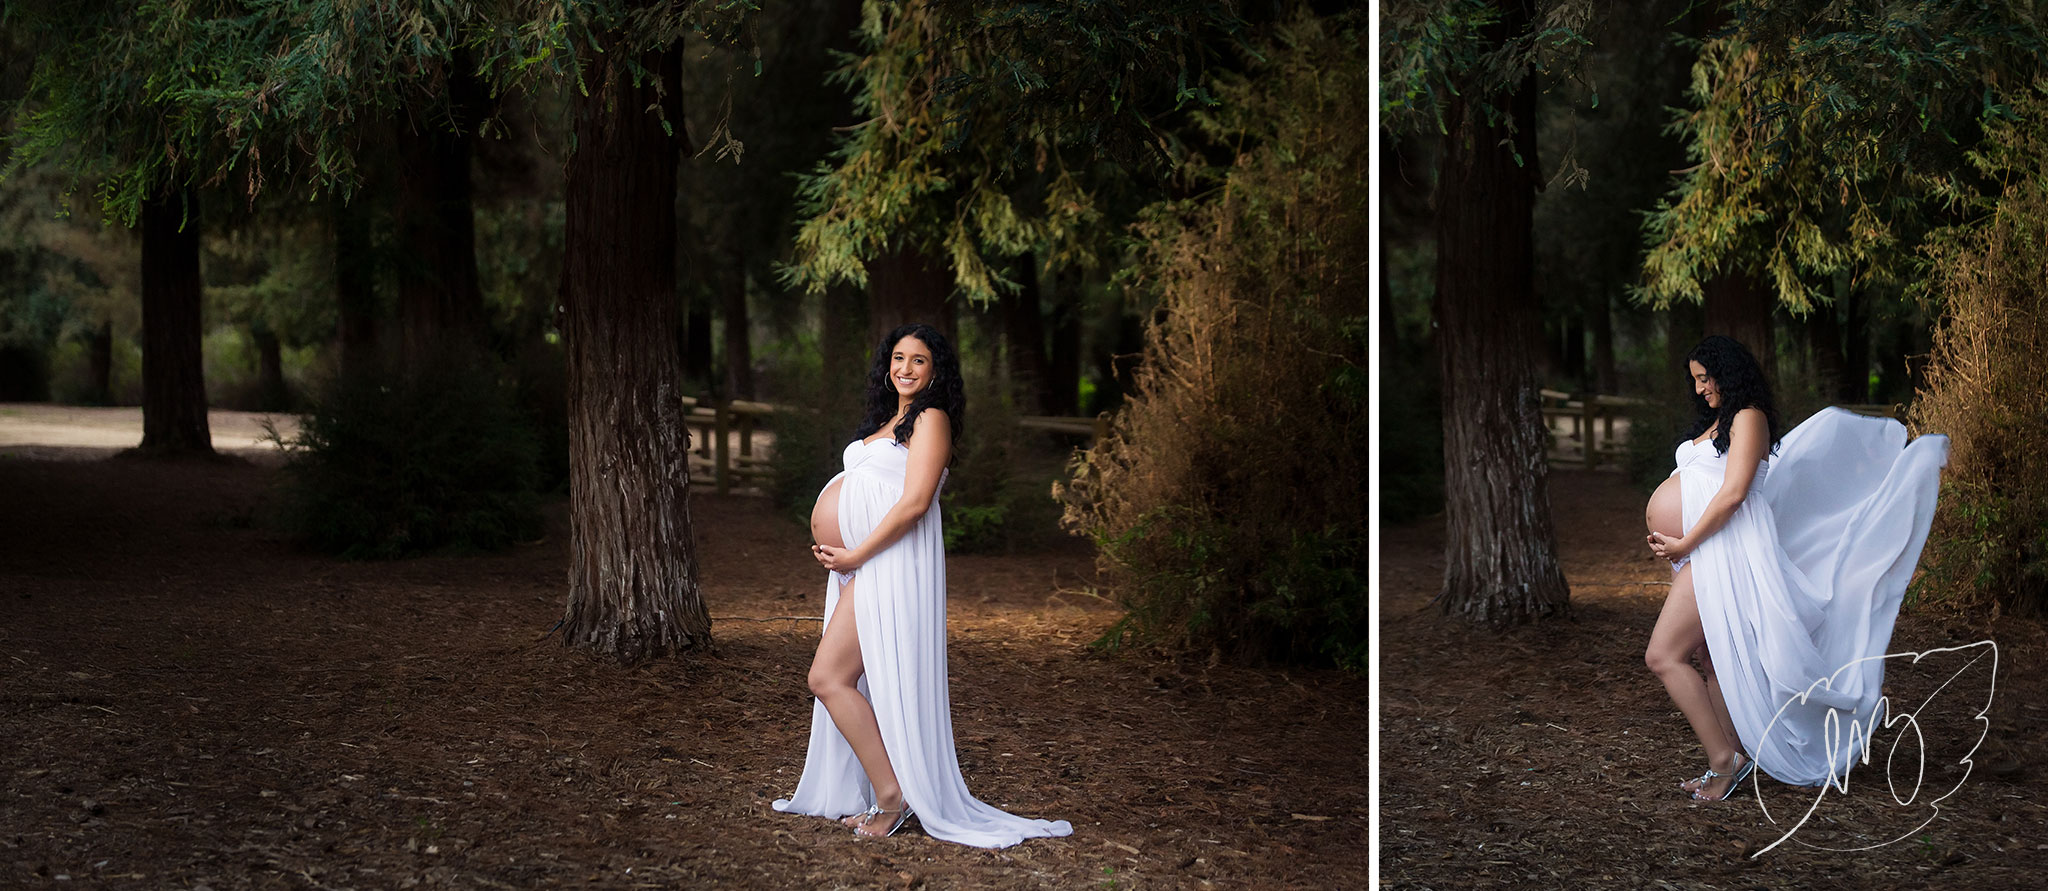 California_Inland_Empire_Maternity_Photographer_09.jpg